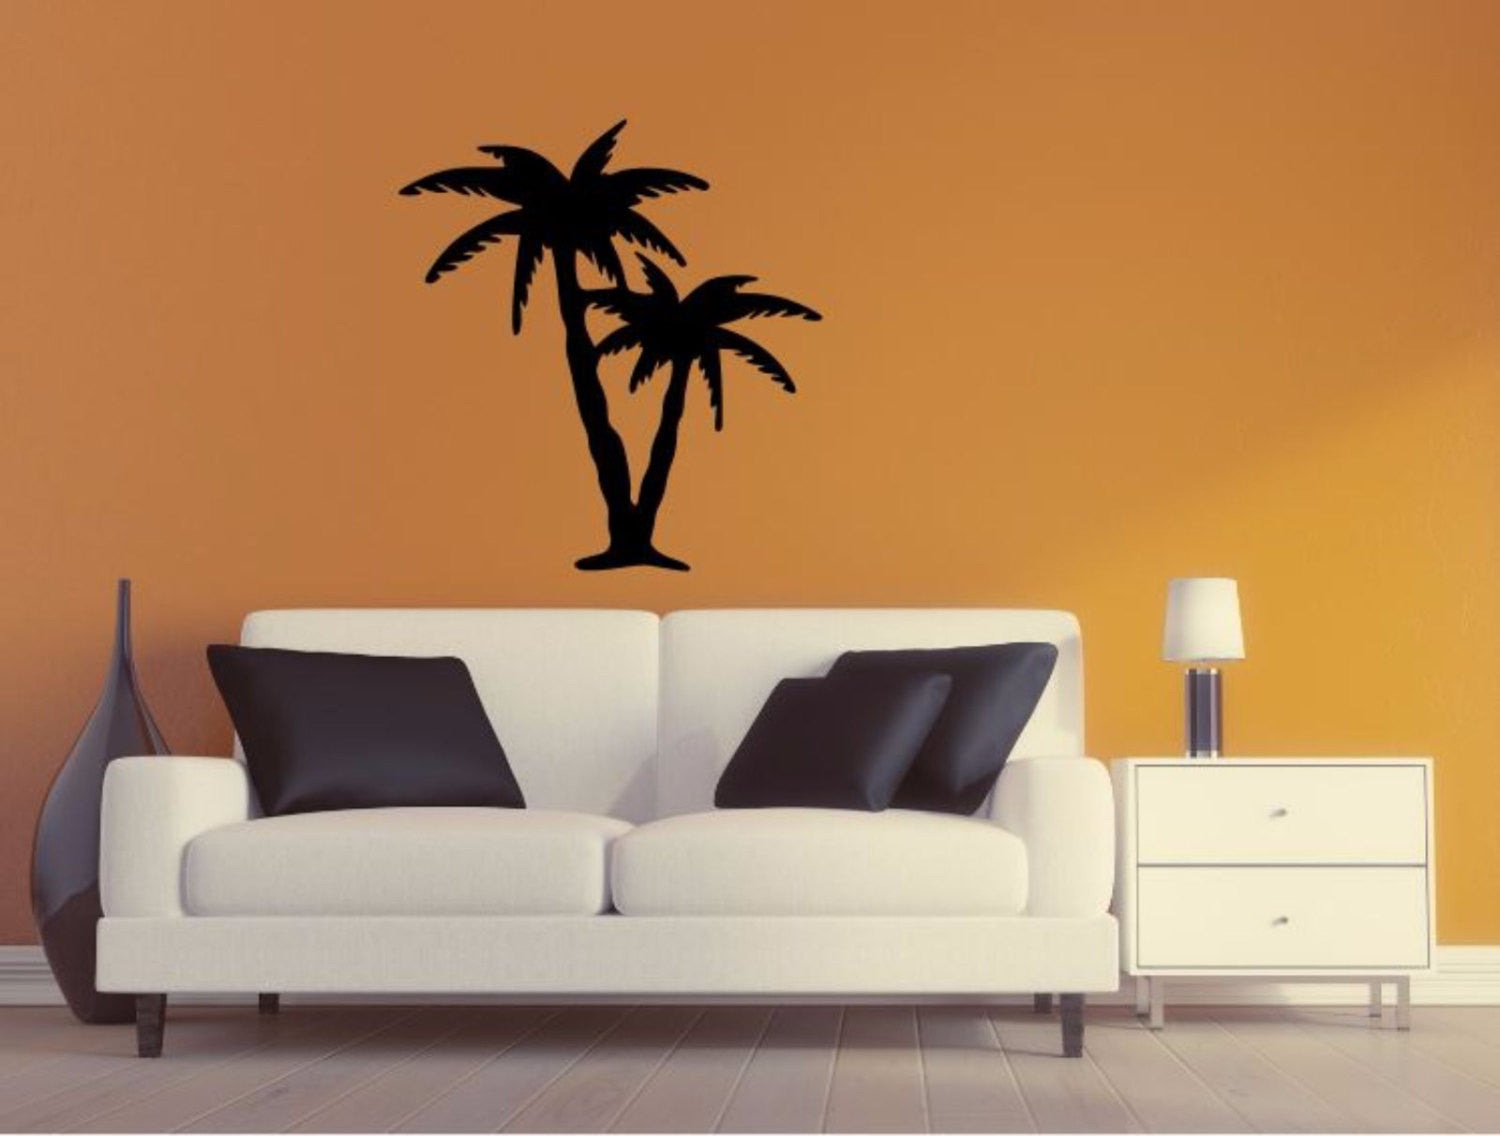 Palm Tree Wall Decal - Palm Tree Silhouette Vinyl Wall Sticker ... for Wall Sticker Tree Silhouette  45gtk